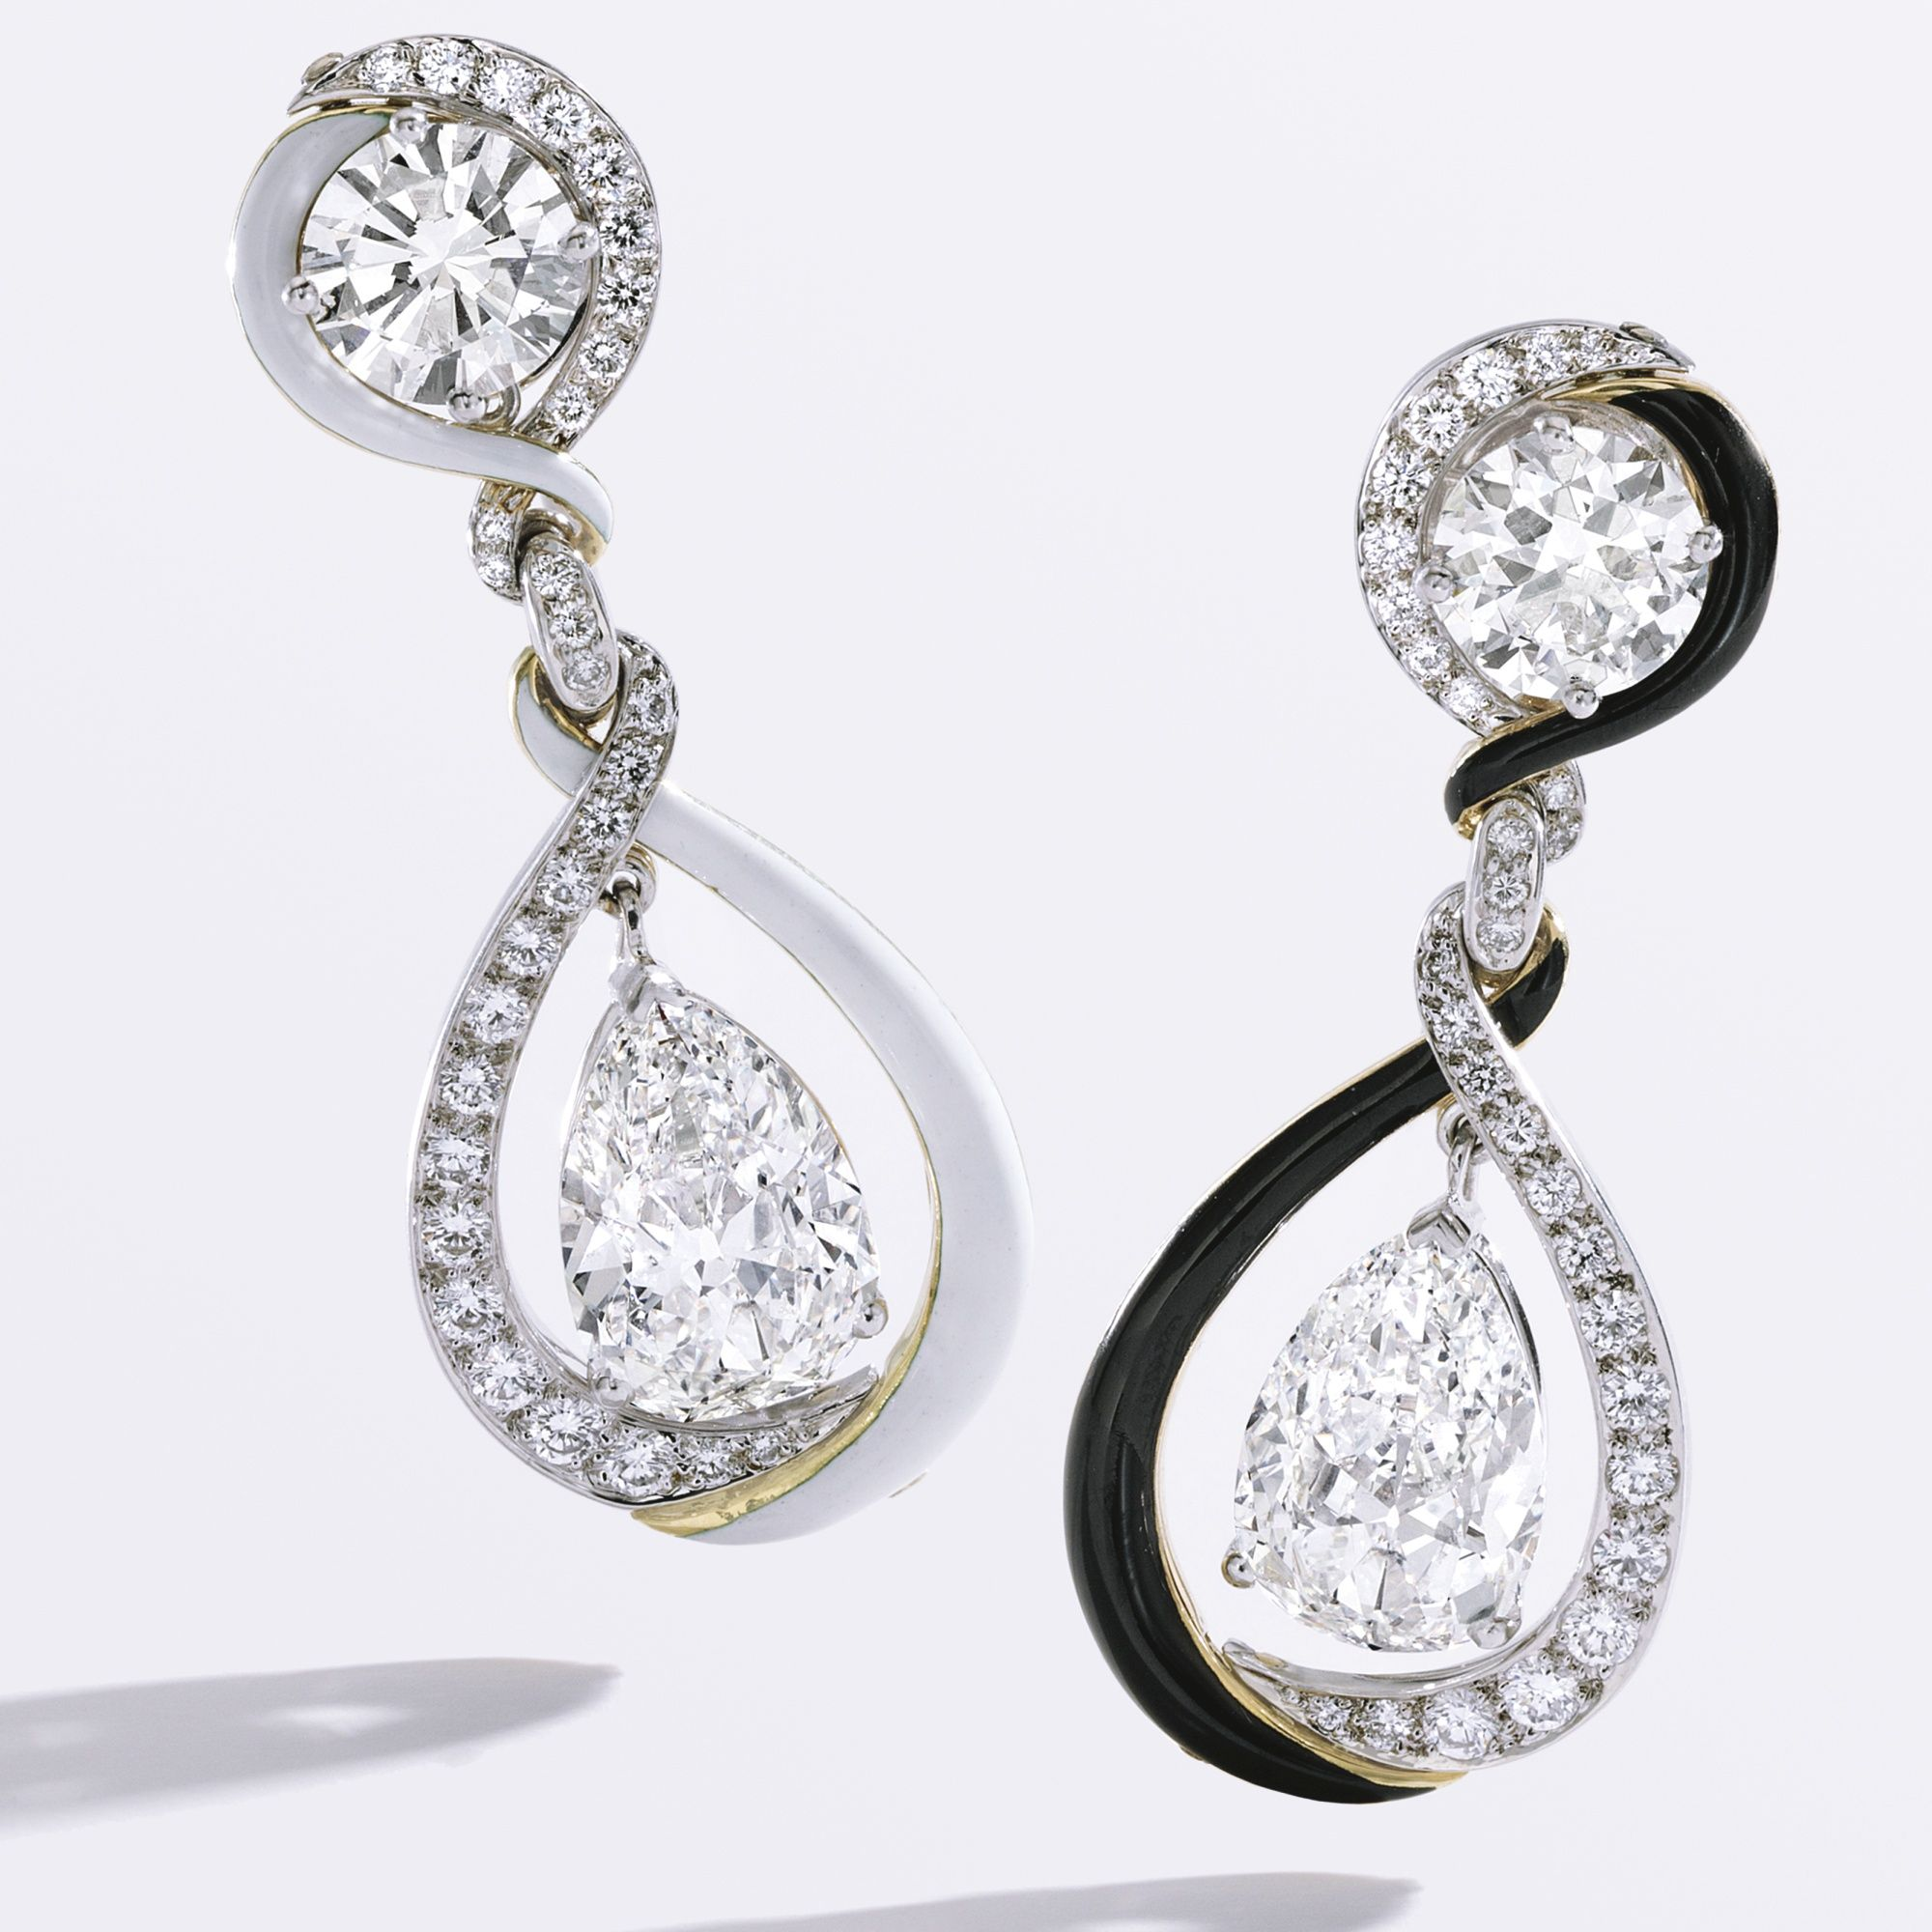 jewels david diamond online eco s earrings webb christies christie